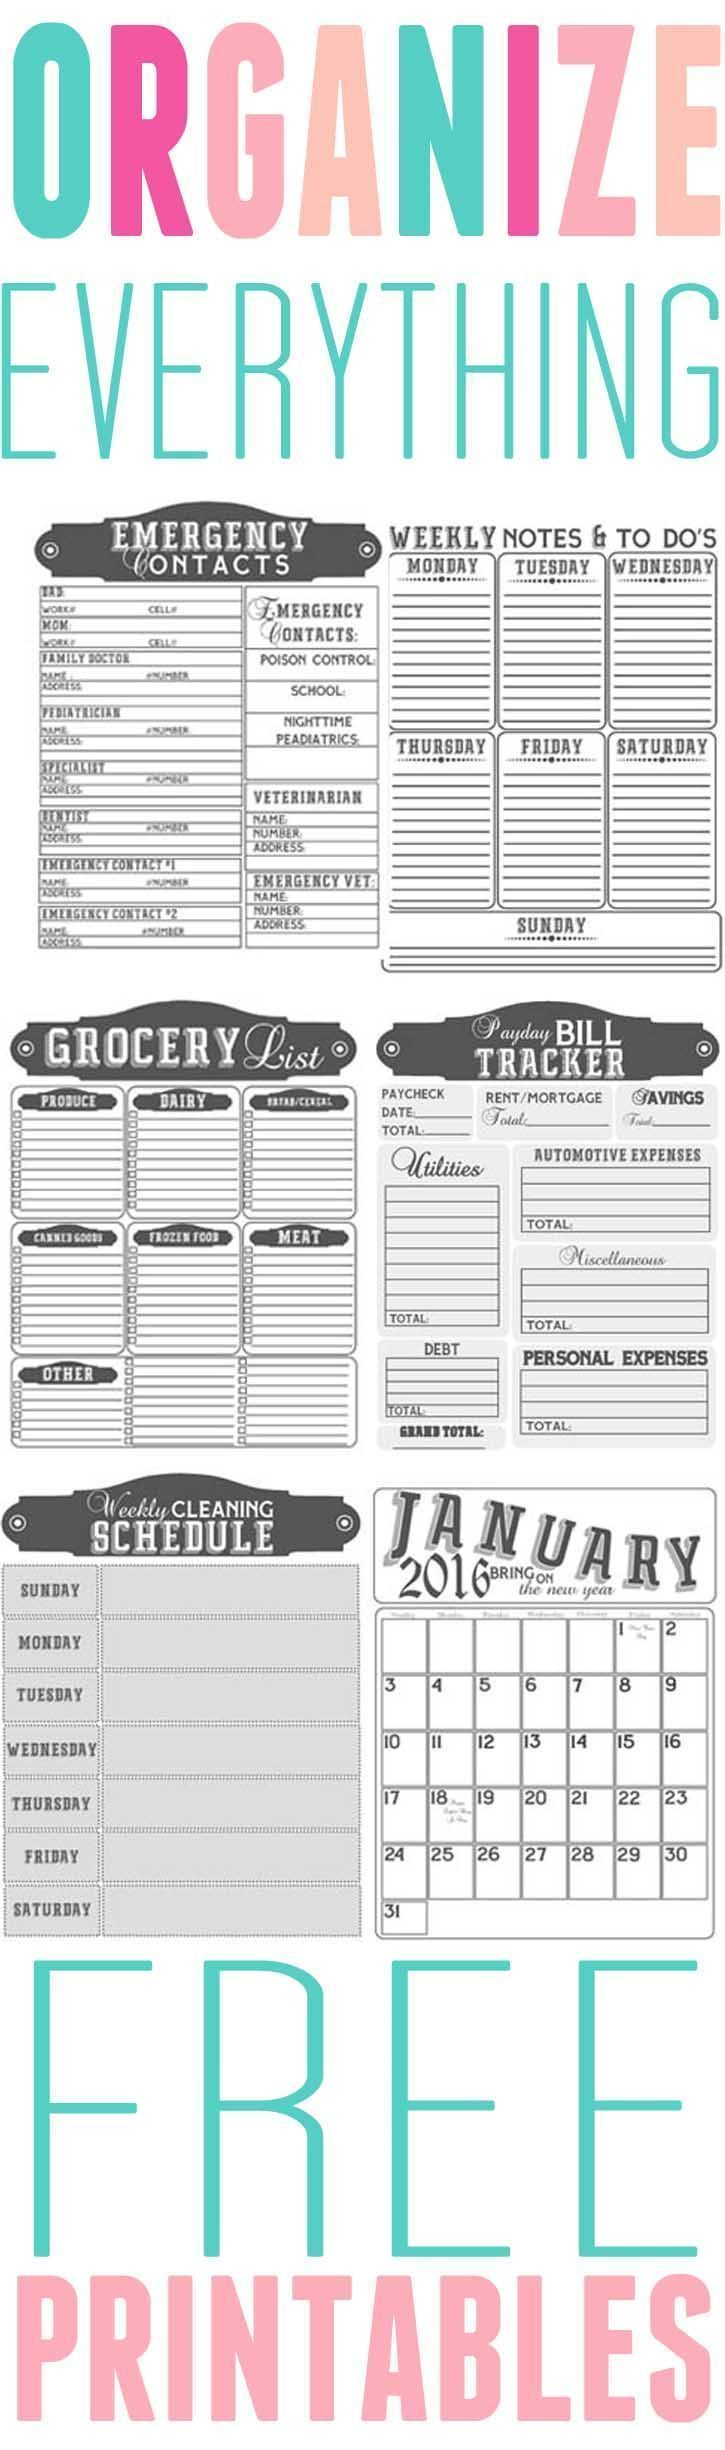 Organization: Free Printables to help you organize every aspect of your life! super simple methods to keep your papers and affairs in order! Next time you are looking for an important document of need to file something you wont have to think twice with th